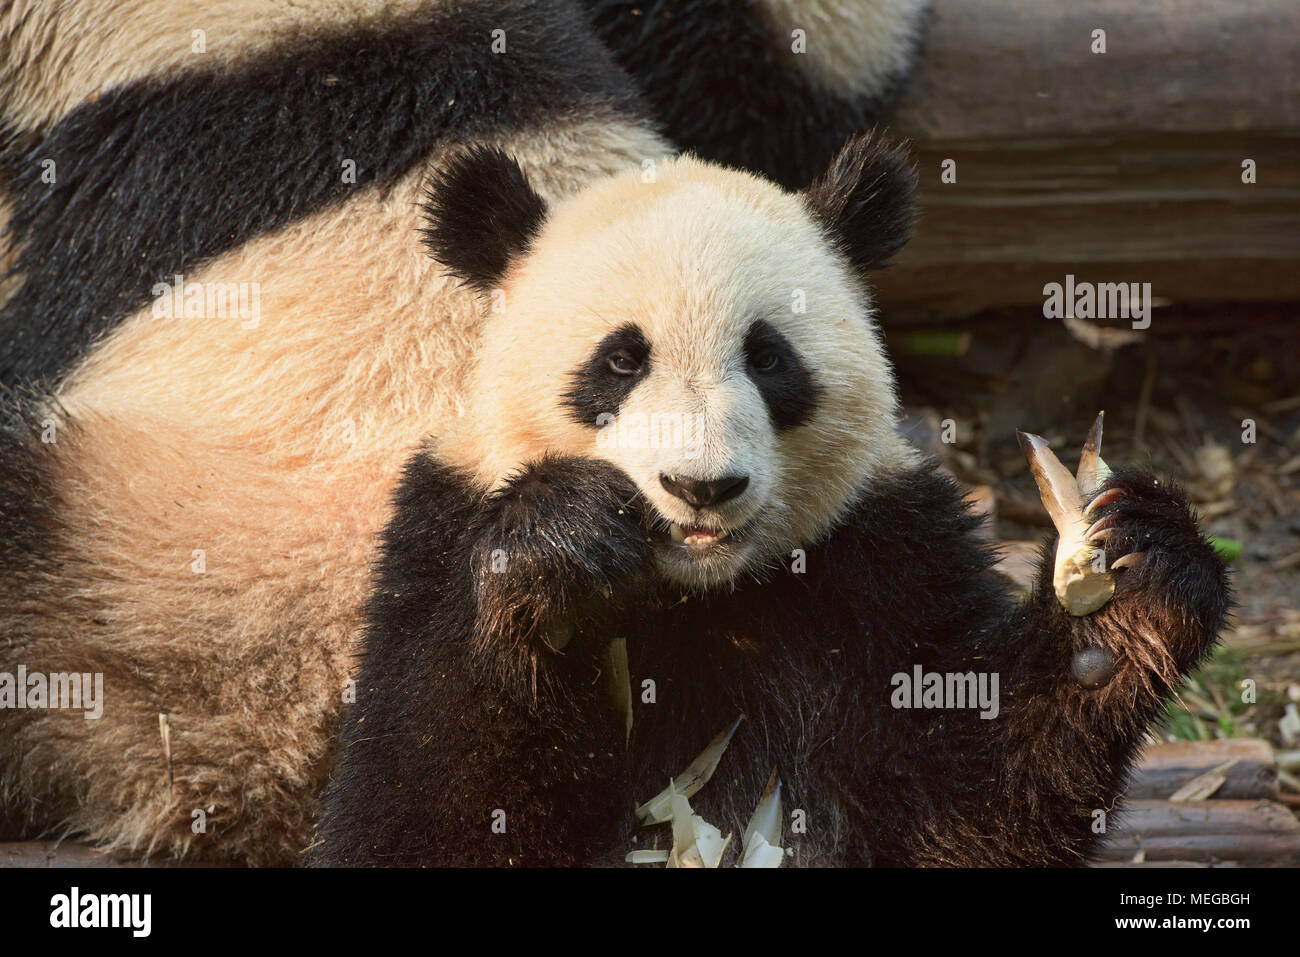 Giant panda eating bamboo at the Chengdu Research Base of Giant Panda Breeding in Chengdu, Sichuan, China - Stock Image